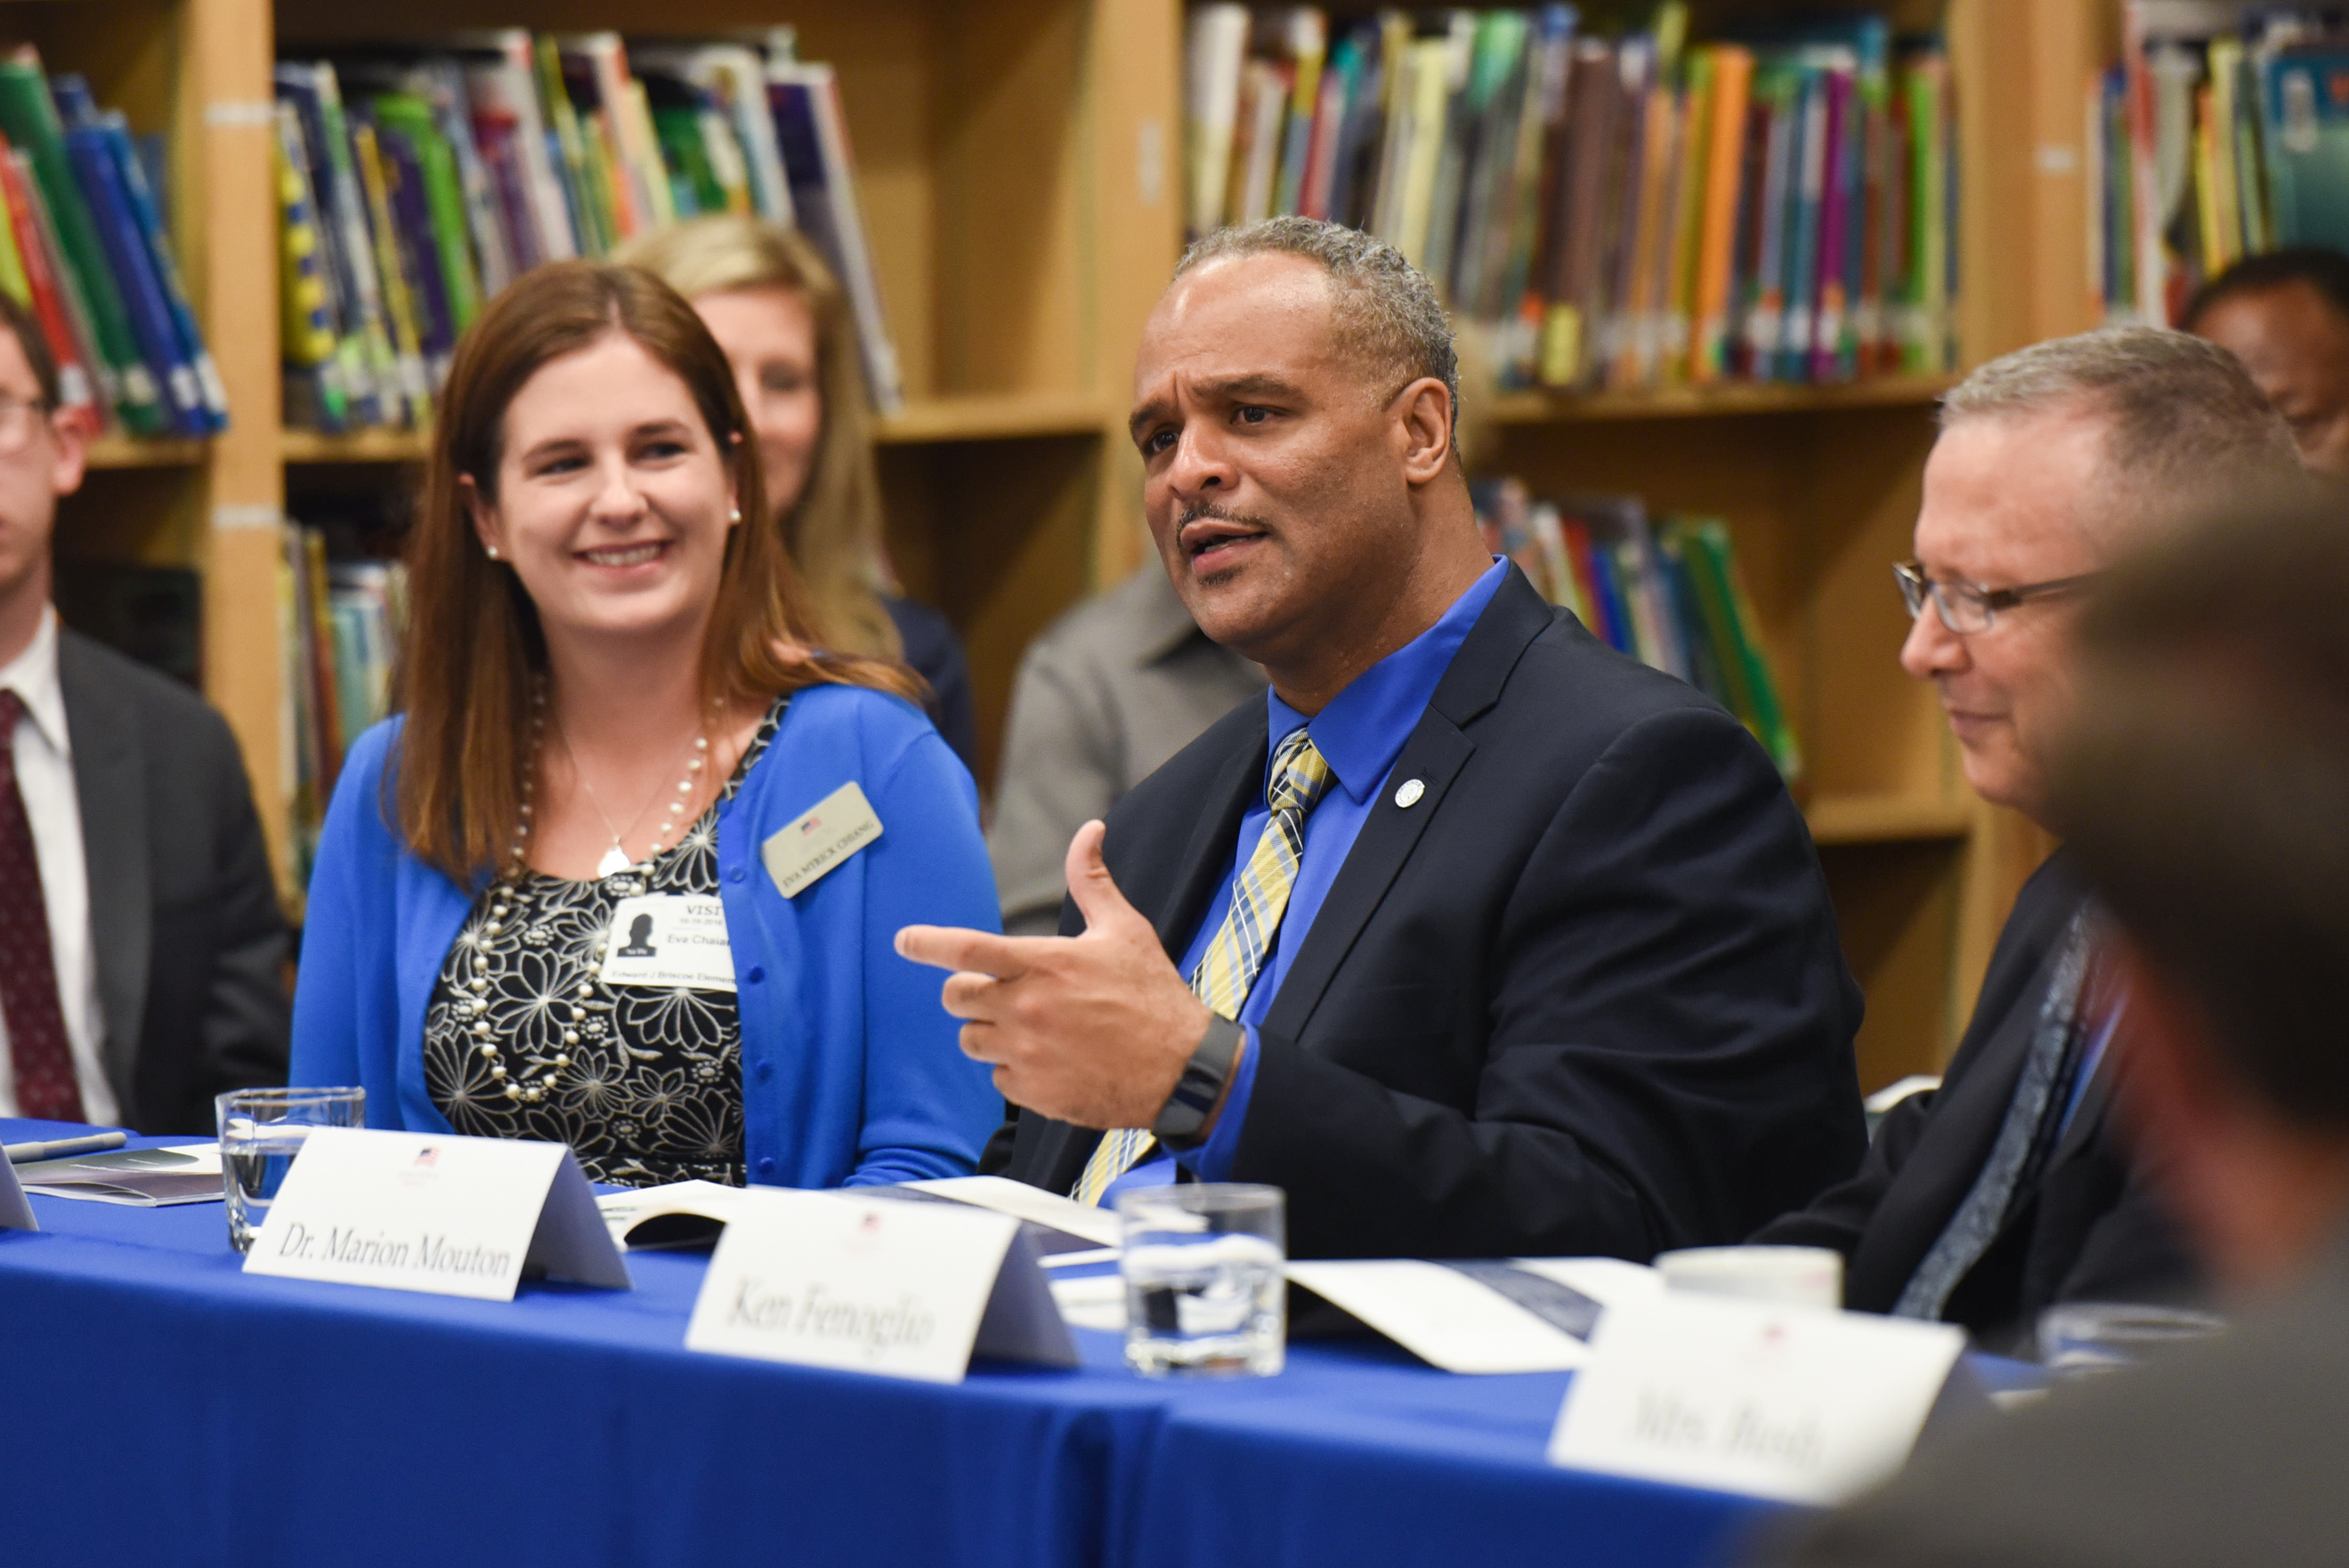 The Overlooked Role of the School Principal